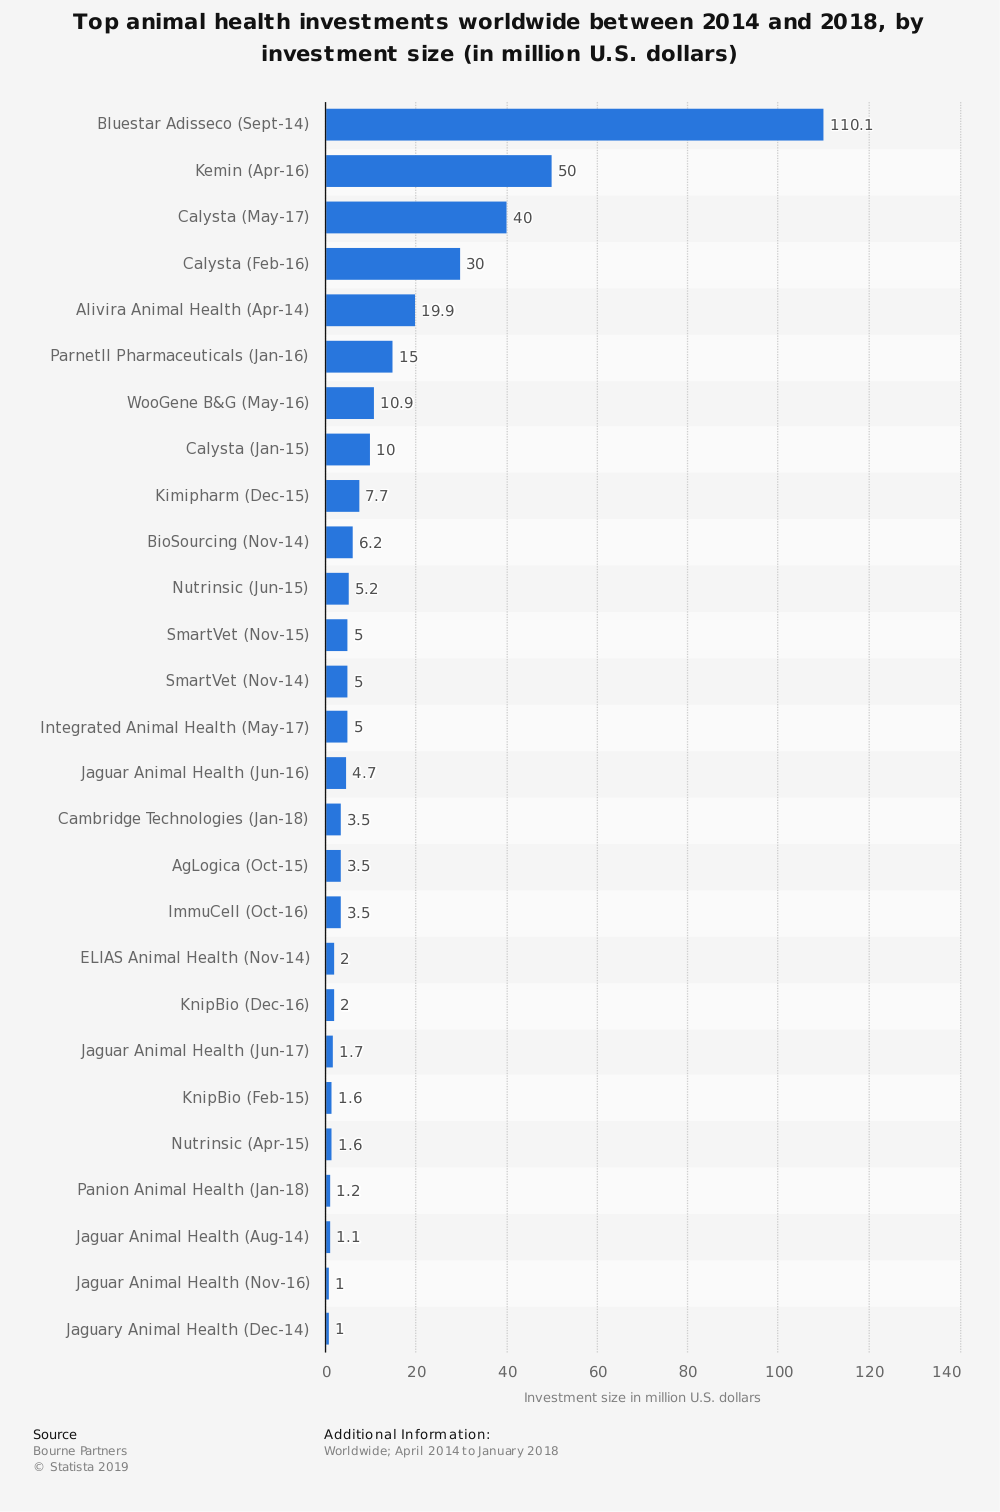 Statistic: Top animal health investments worldwide between 2014 and 2018, by investment size (in million U.S. dollars) | Statista